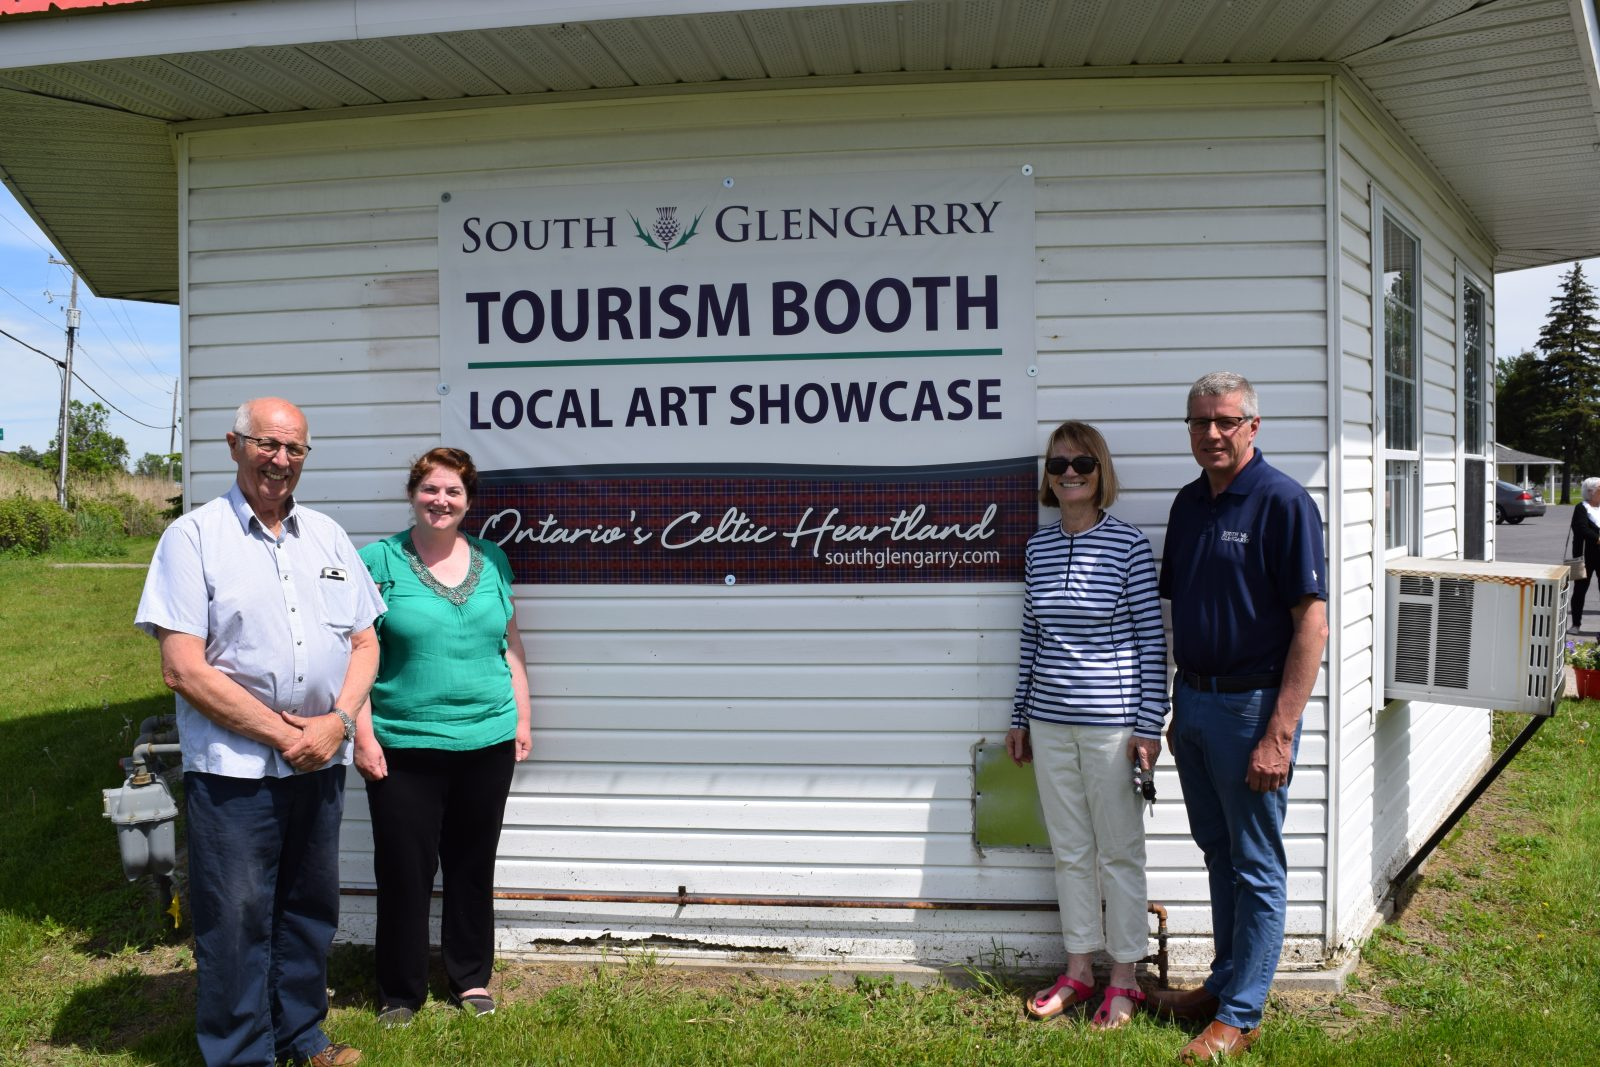 New art & info centre opens in South Glengarry